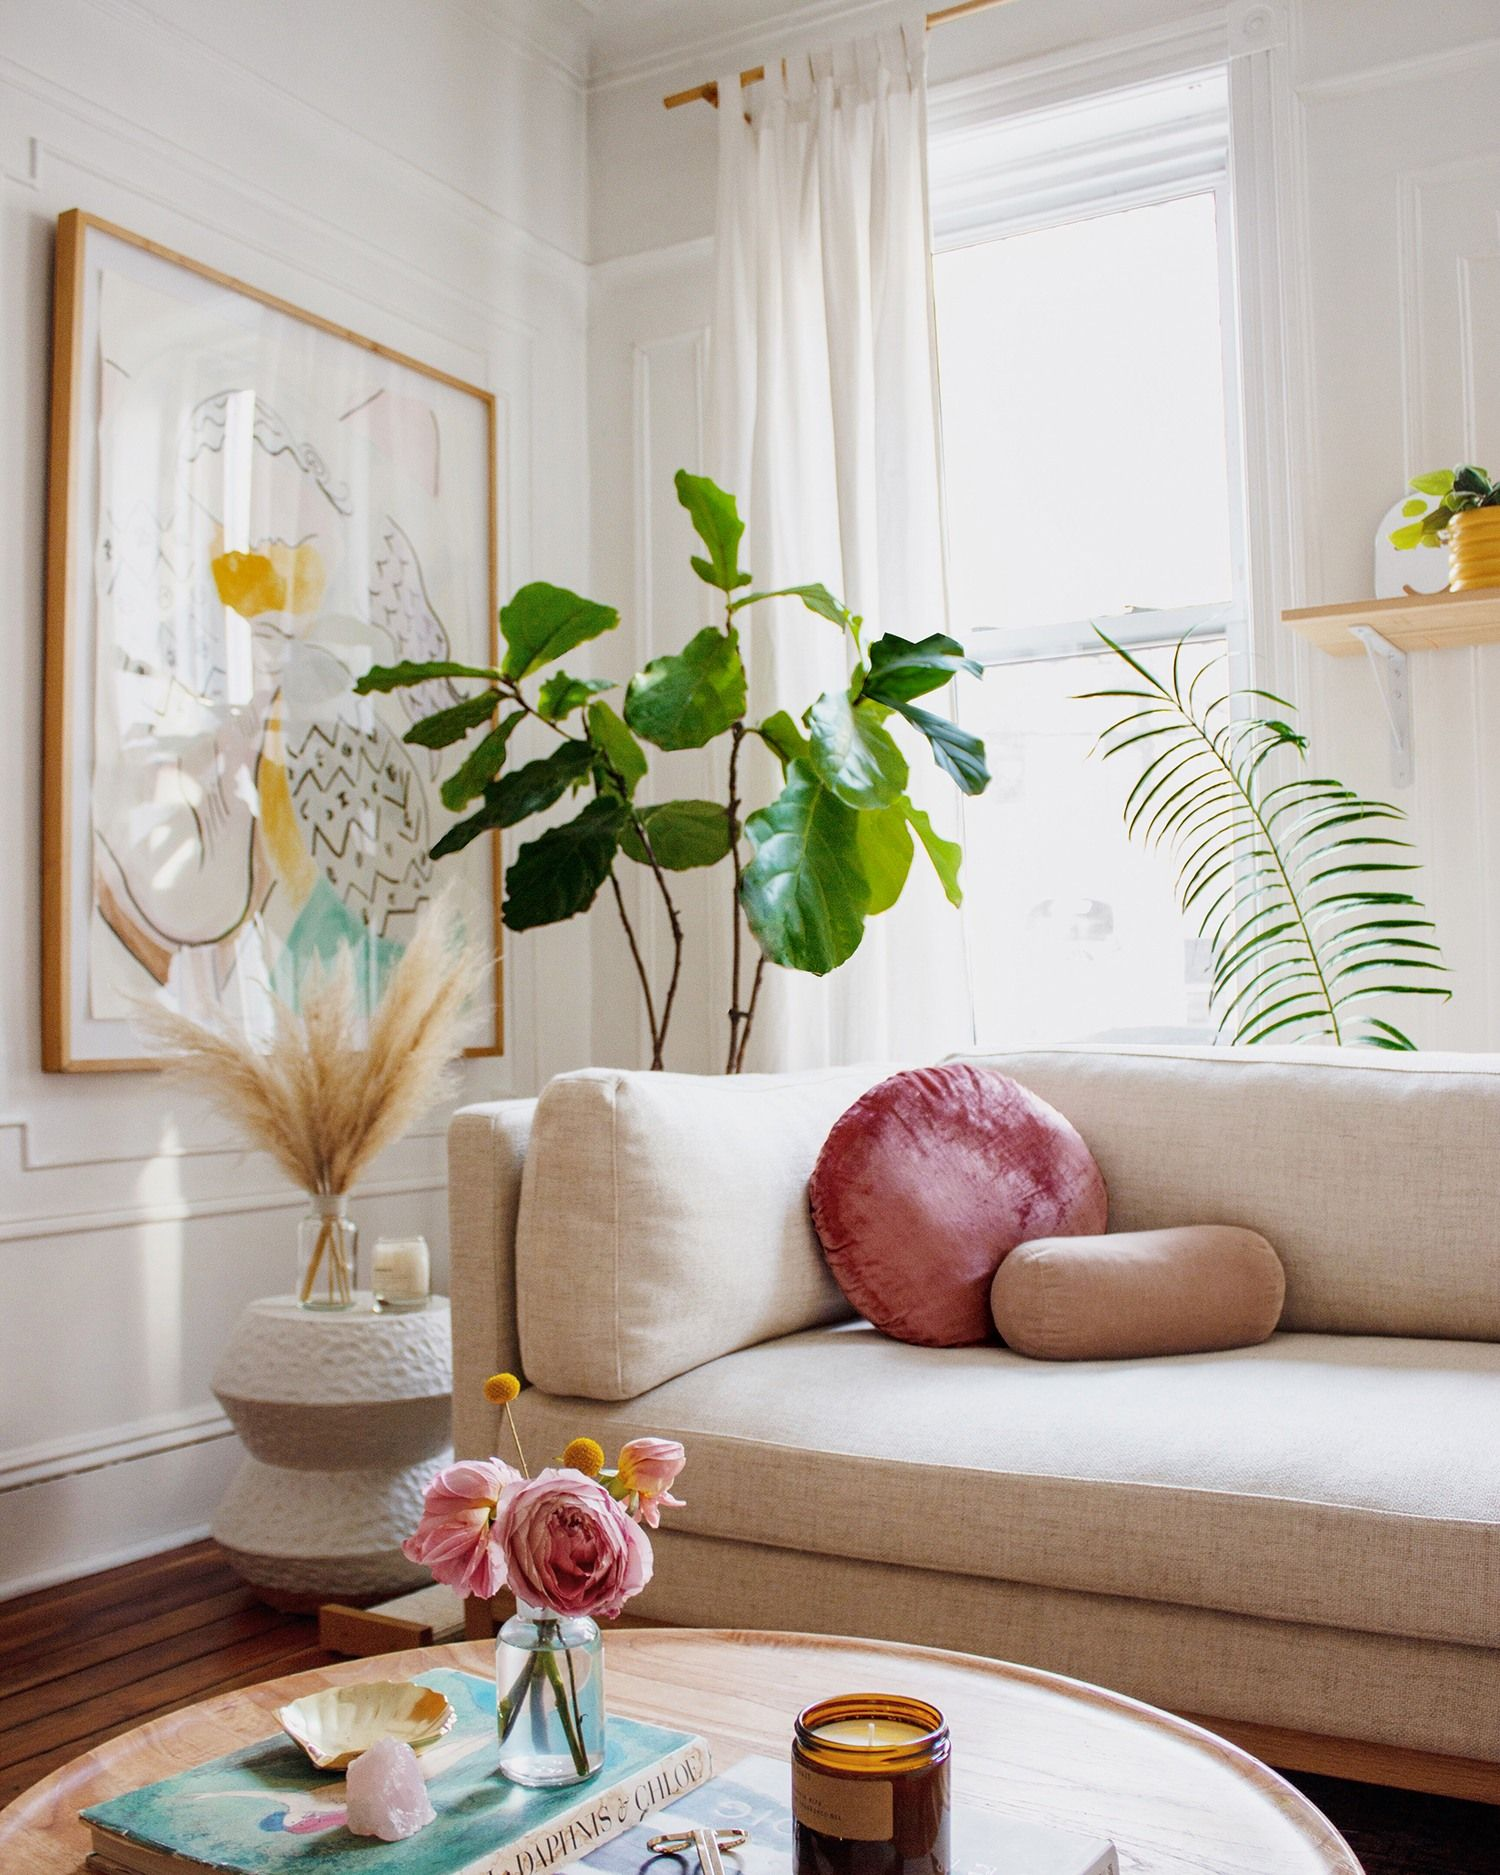 Incroyable  Mot-Clé Mallory Fletchall's Living Room Just Got a Sophisticated Makeover ...